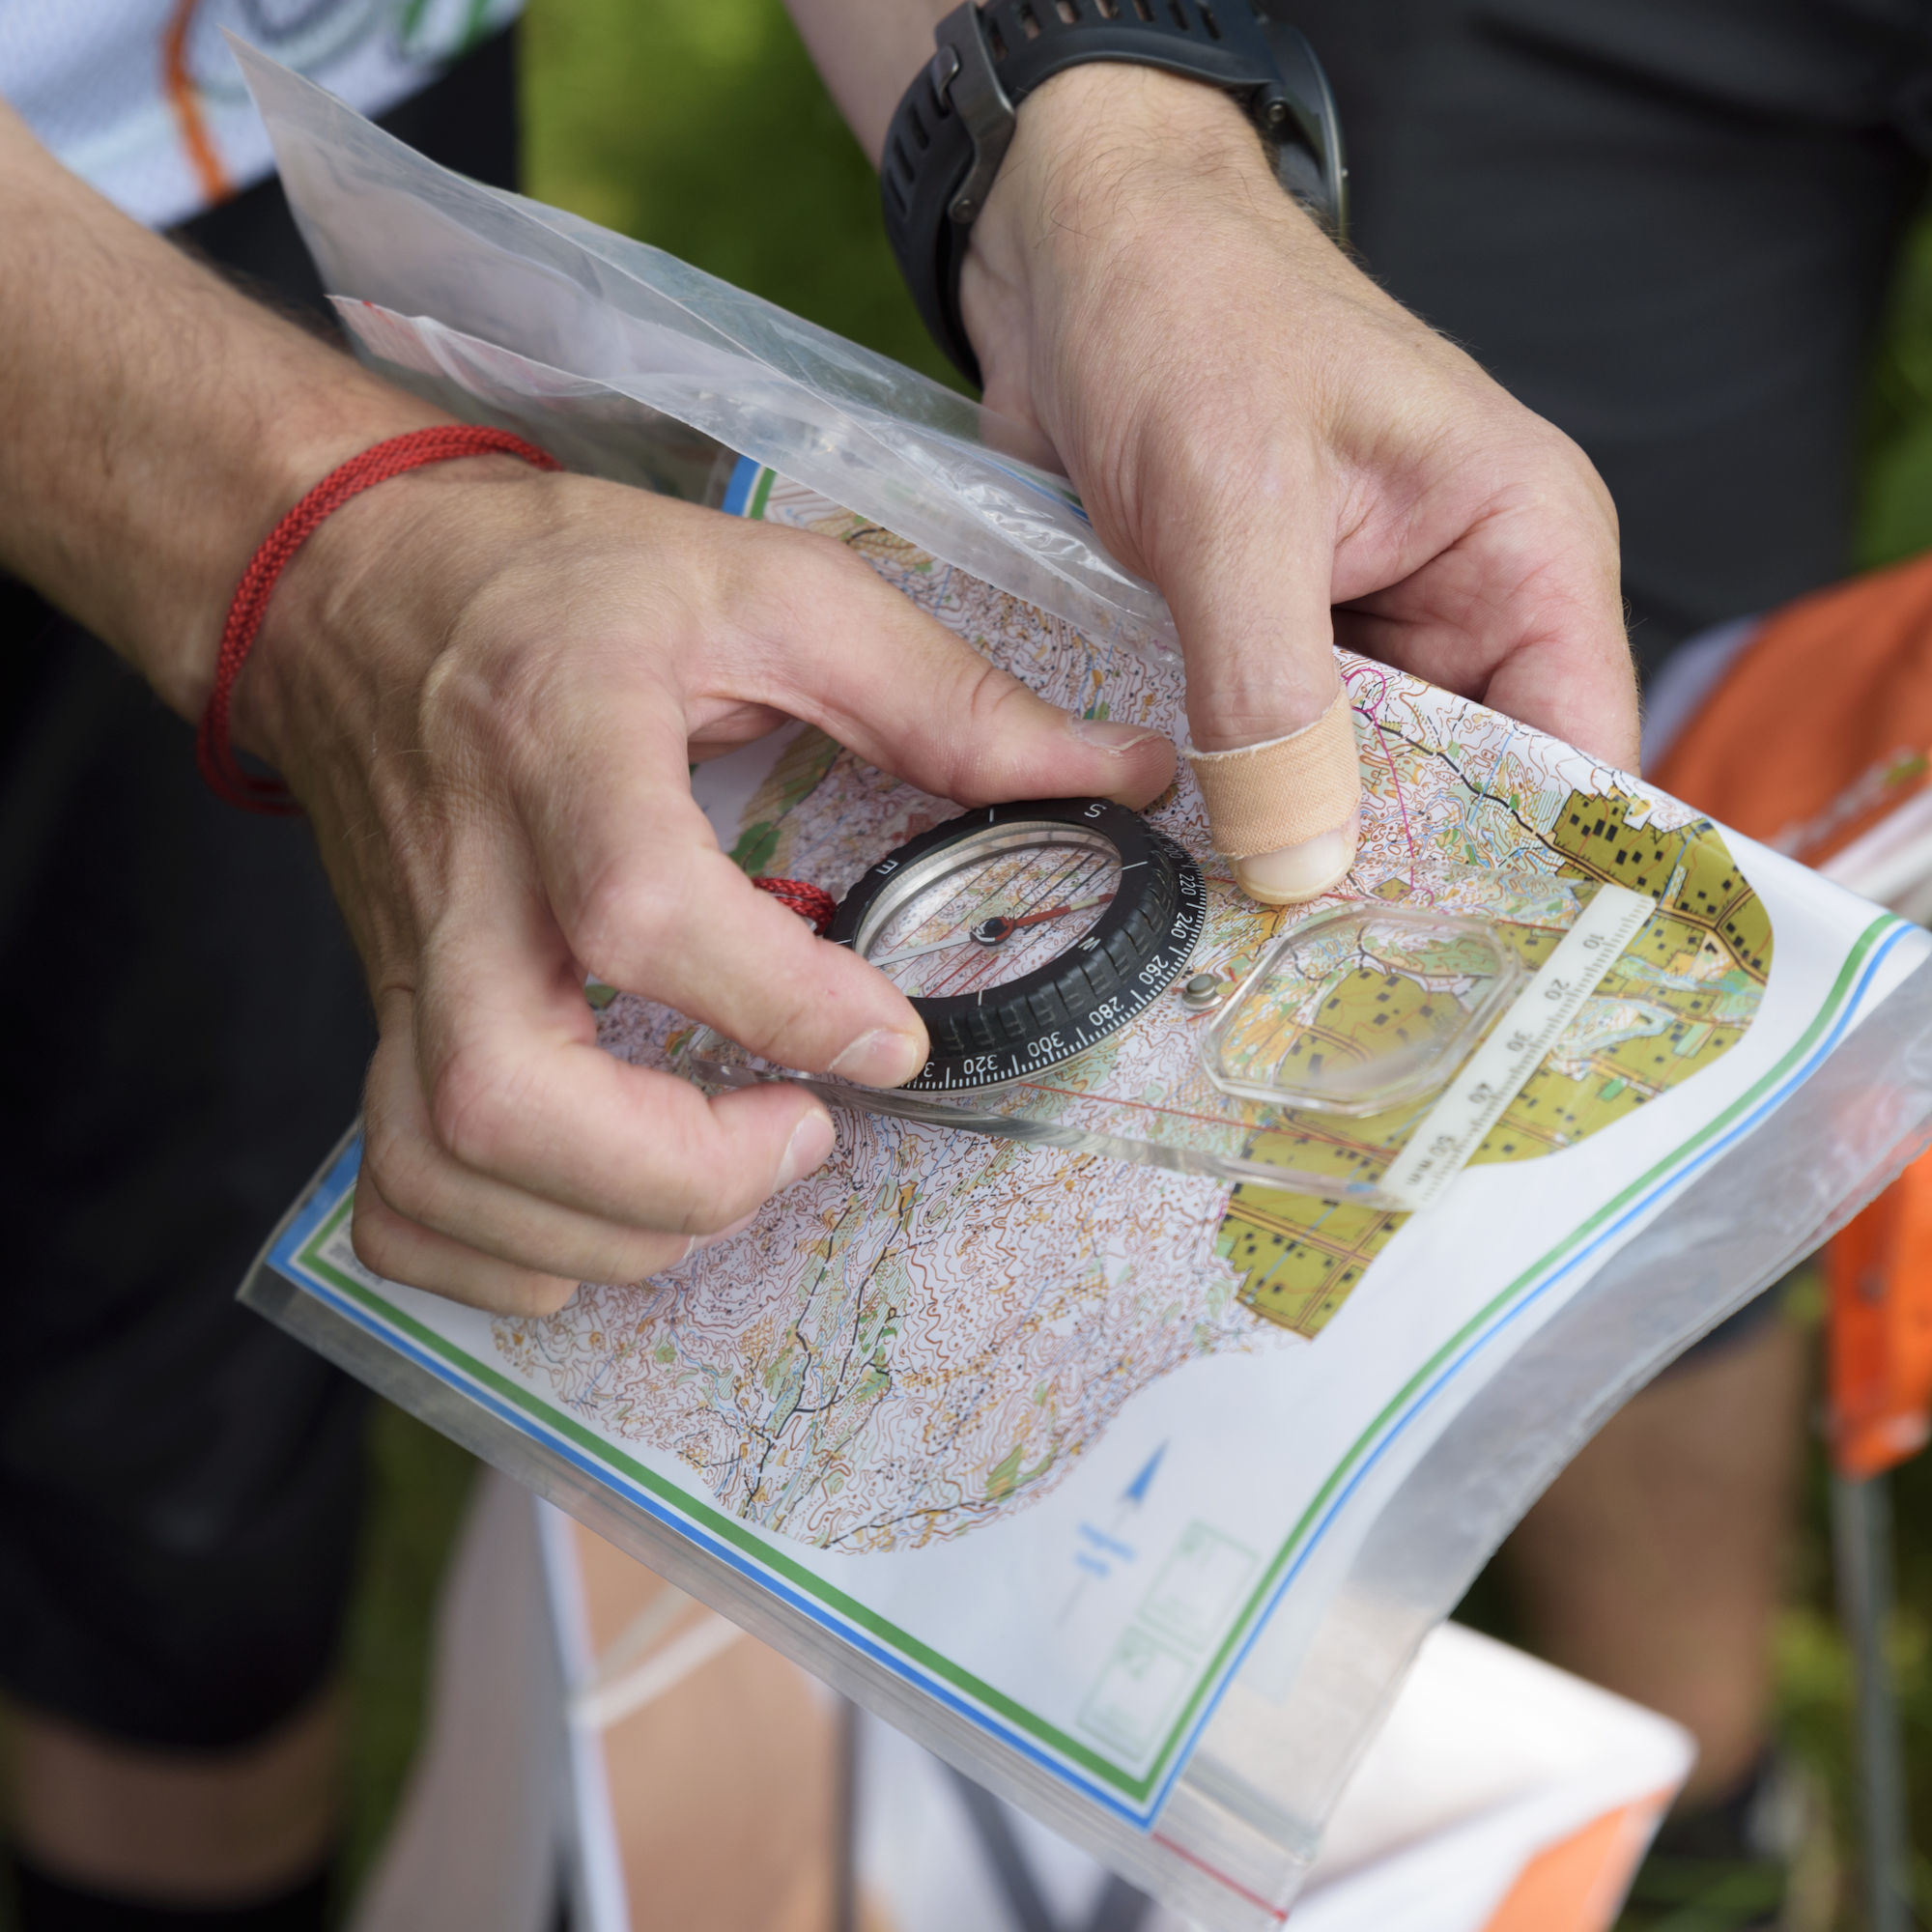 A hand holds a compass overtop of a paper map